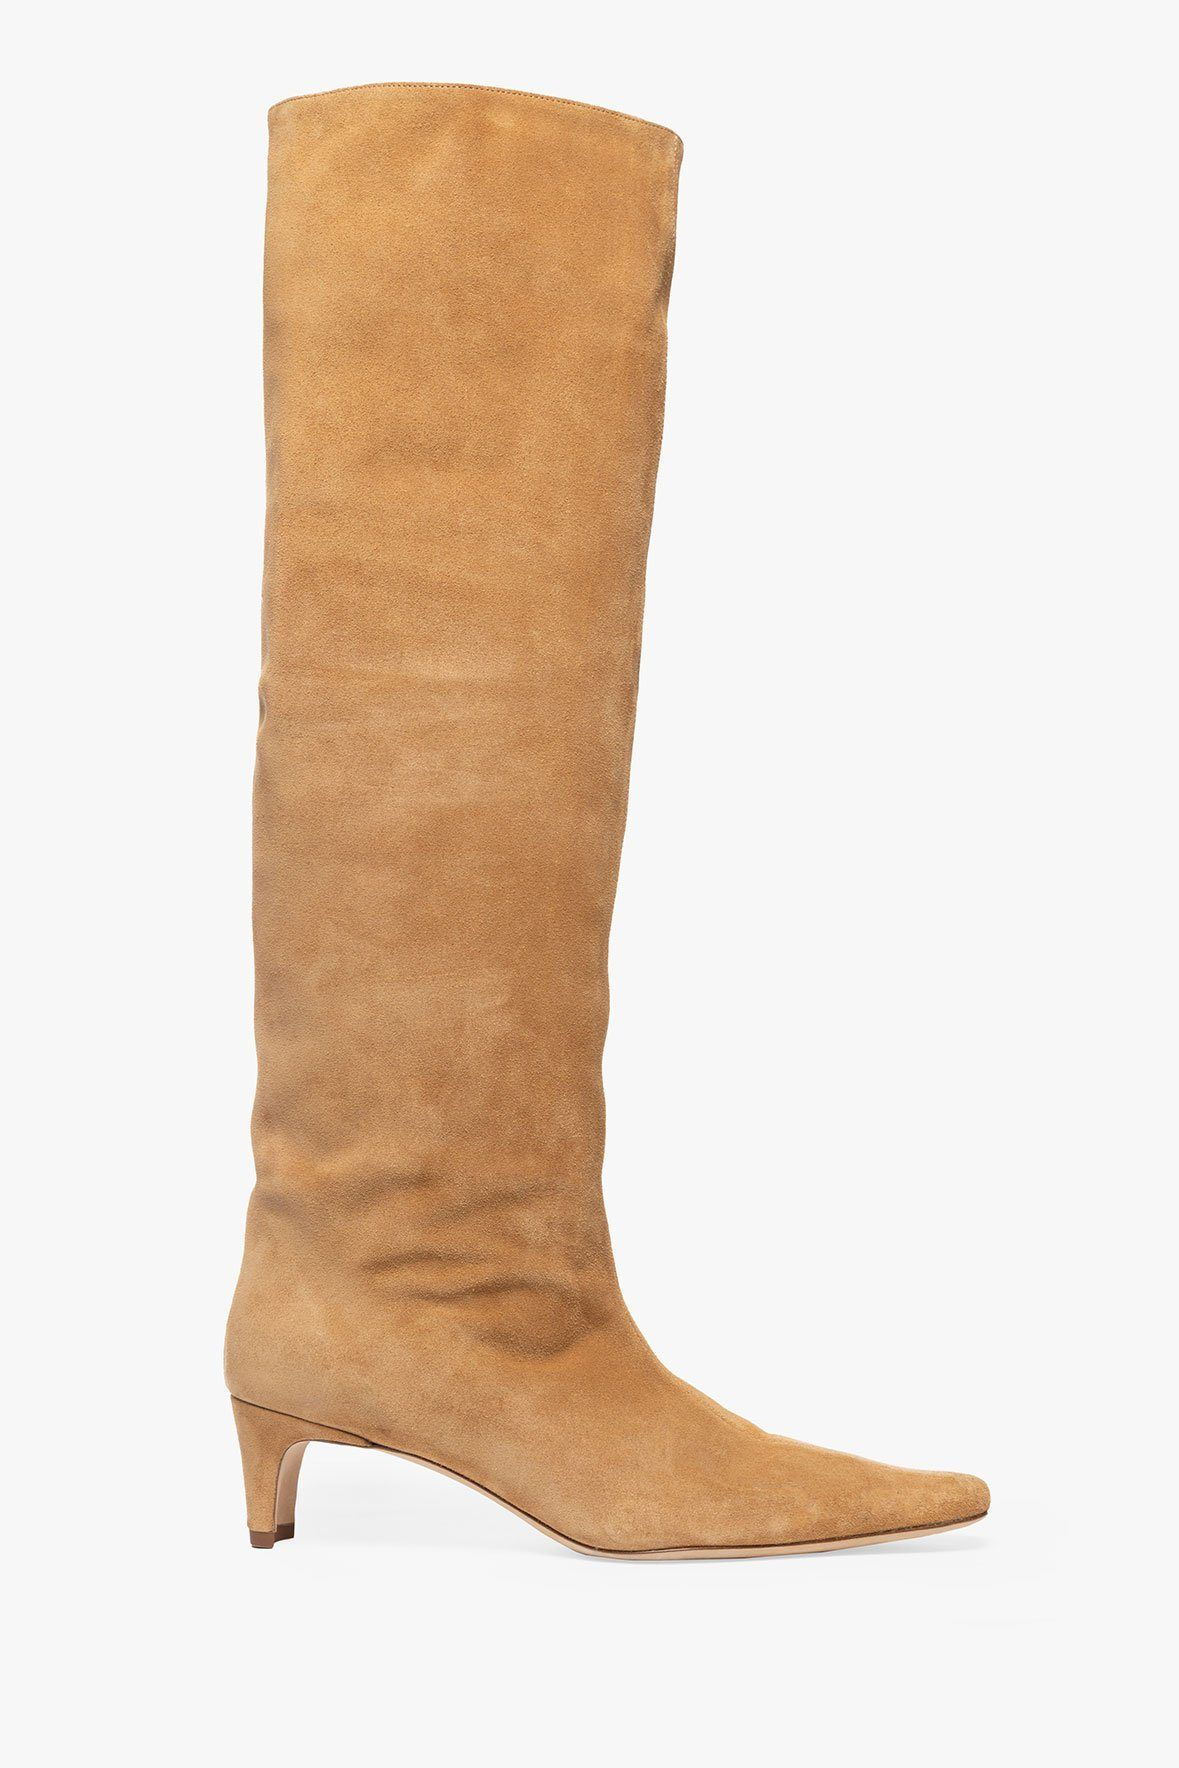 Prediction: This Comfy Boot Trend Is About to Be Very Major - kitten heel boots 295021 1630279584593